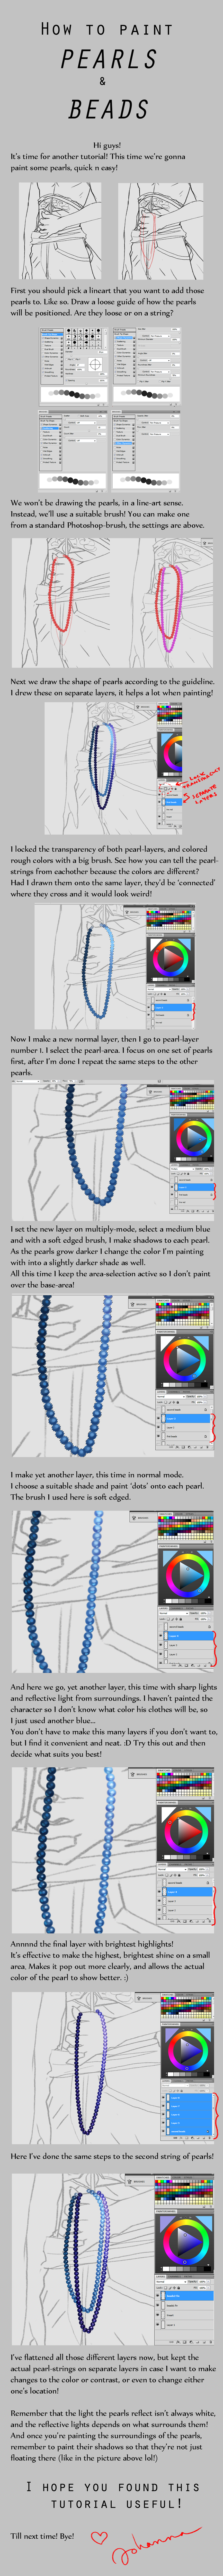 How to paint Pearls by juuhanna